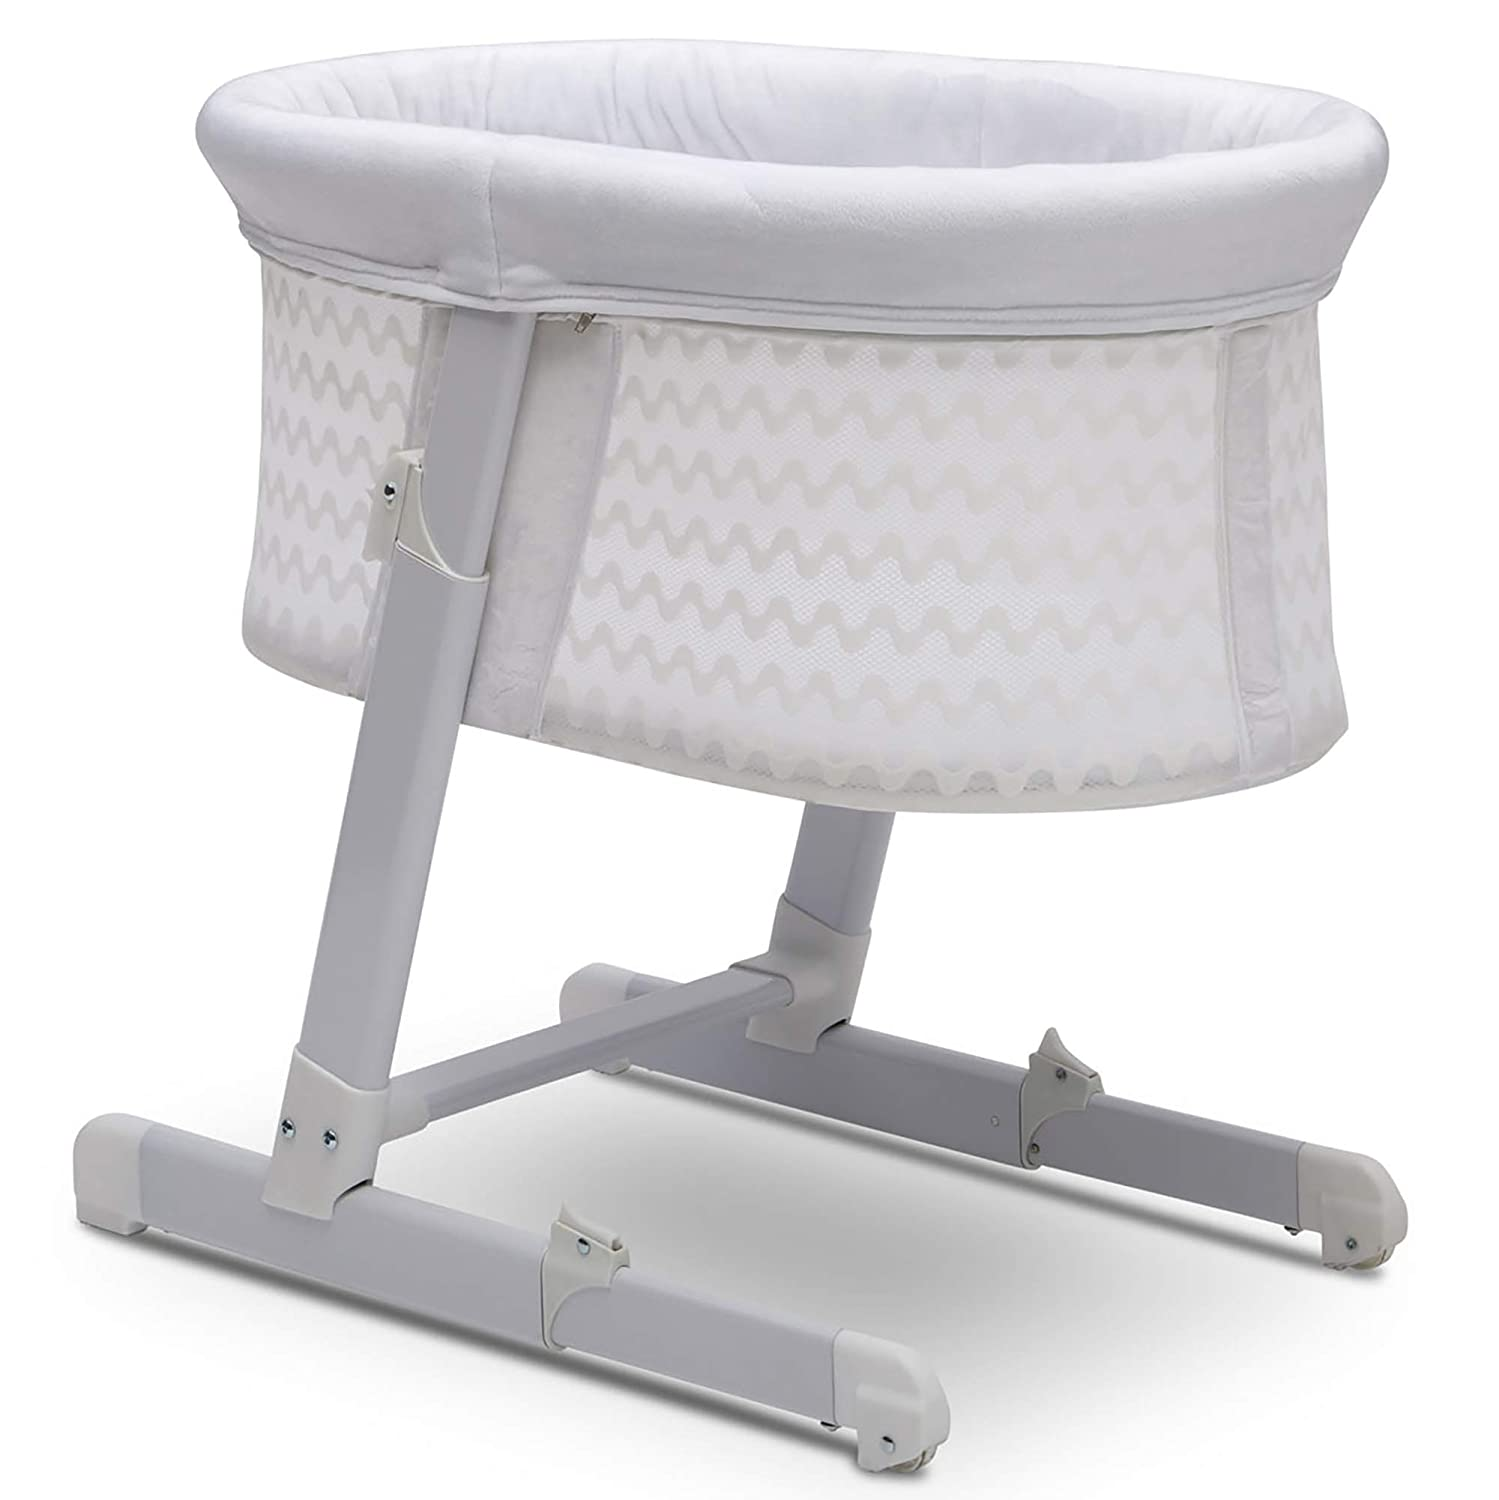 Simmons Kids Oval City Sleeper Bedside Bassinet - Adjustable Height Portable Crib with Wheels & Airflow Mesh, White Cap